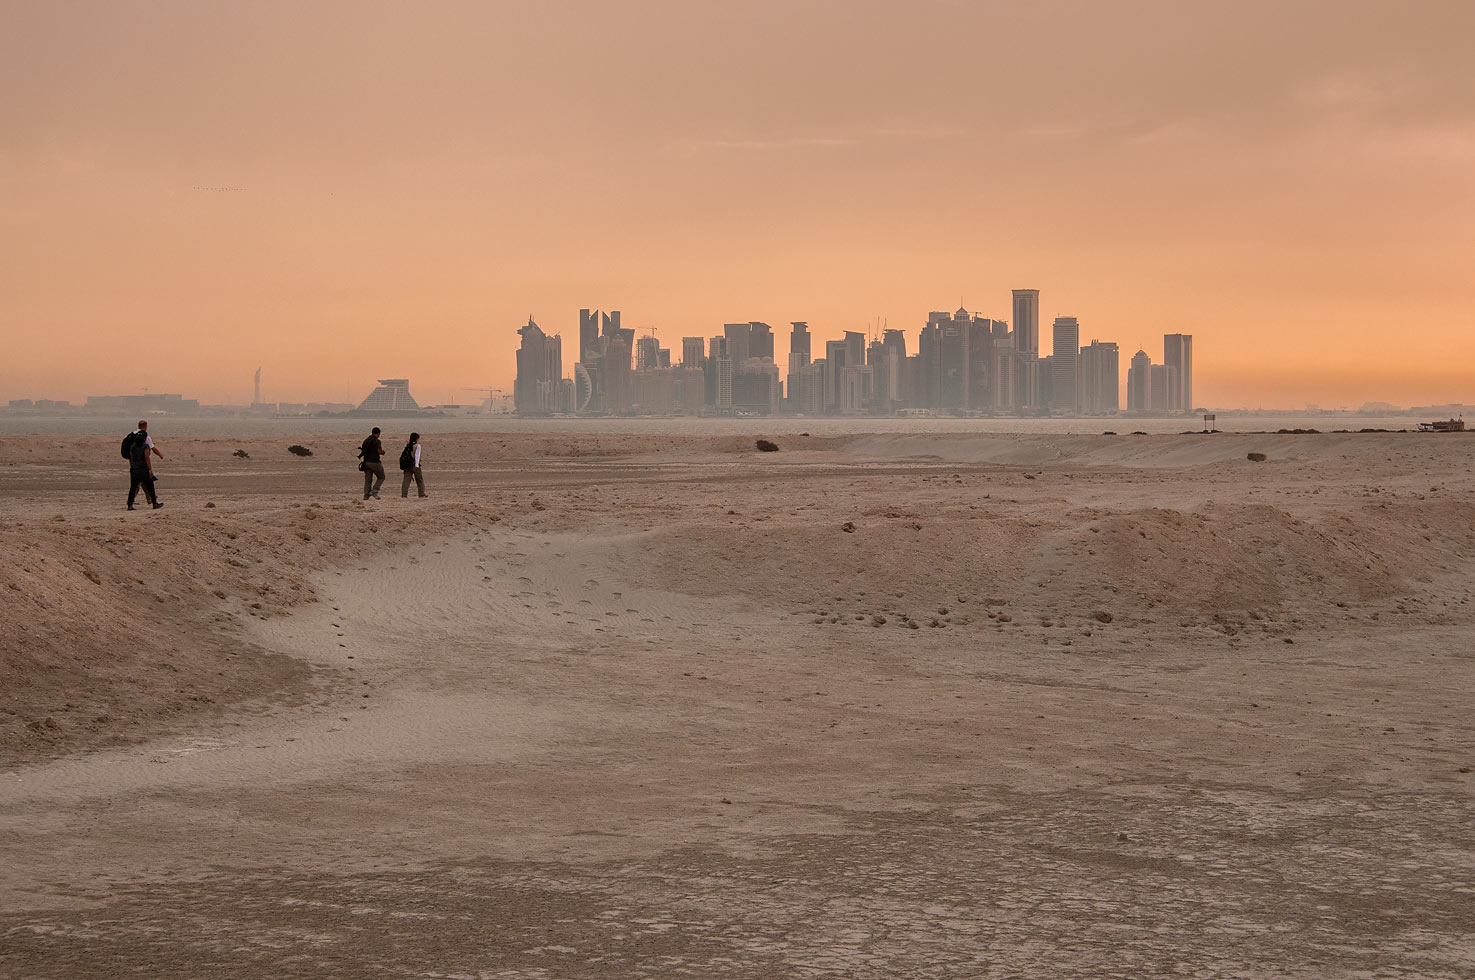 Walking across Safliya Island near Doha at sunset, with West Bay in background. Qatar